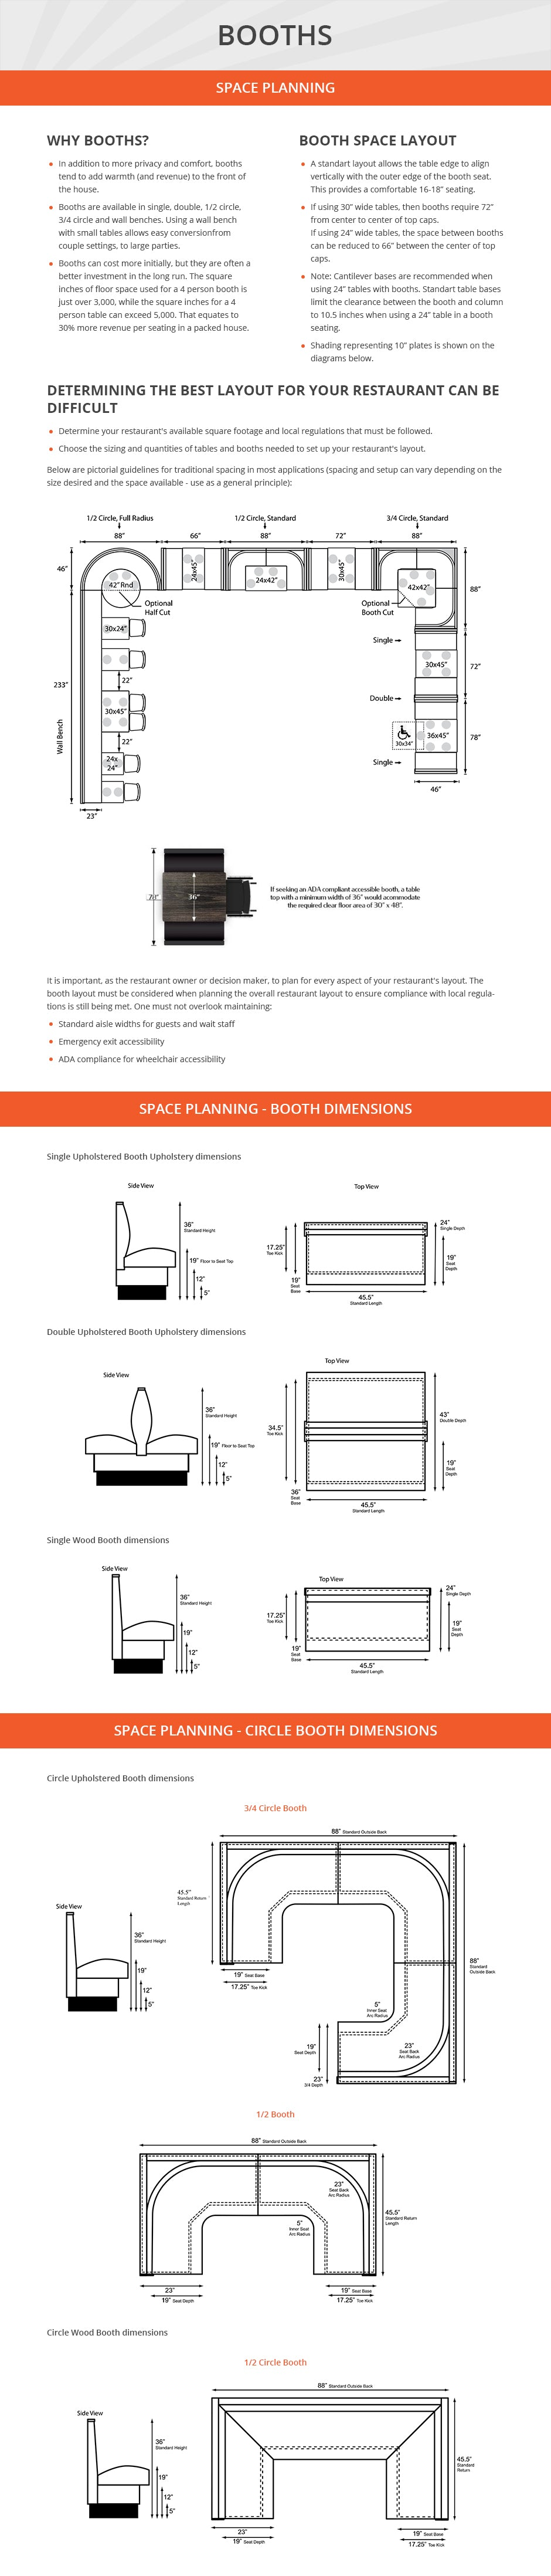 Booths planning guide